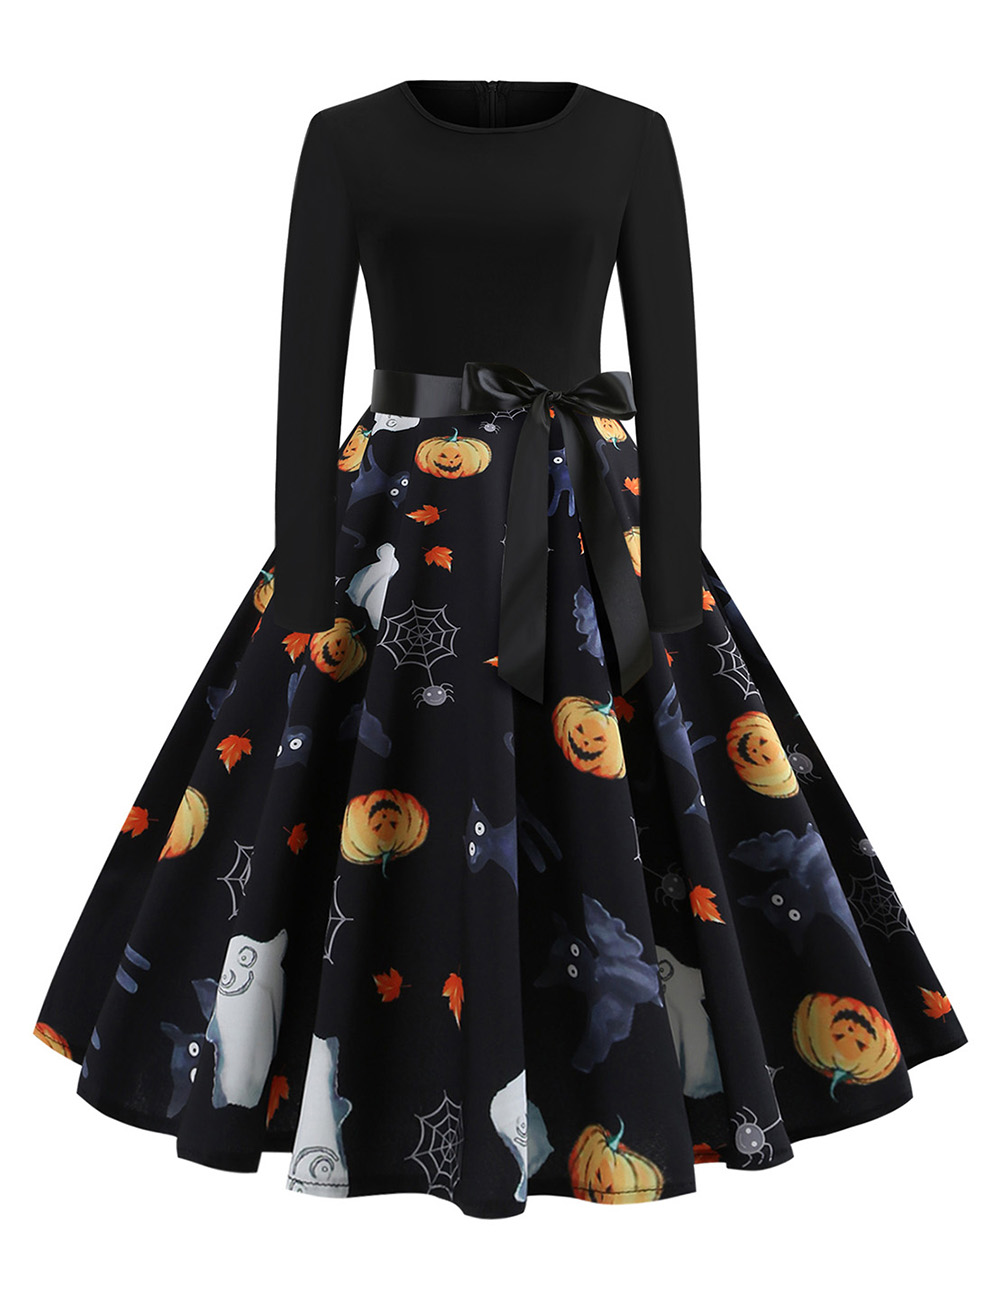 //cdn.affectcloud.com/feelingirldress/upload/imgs/2019-07-31/VZ191183-M03/VZ191183-M03.jpg